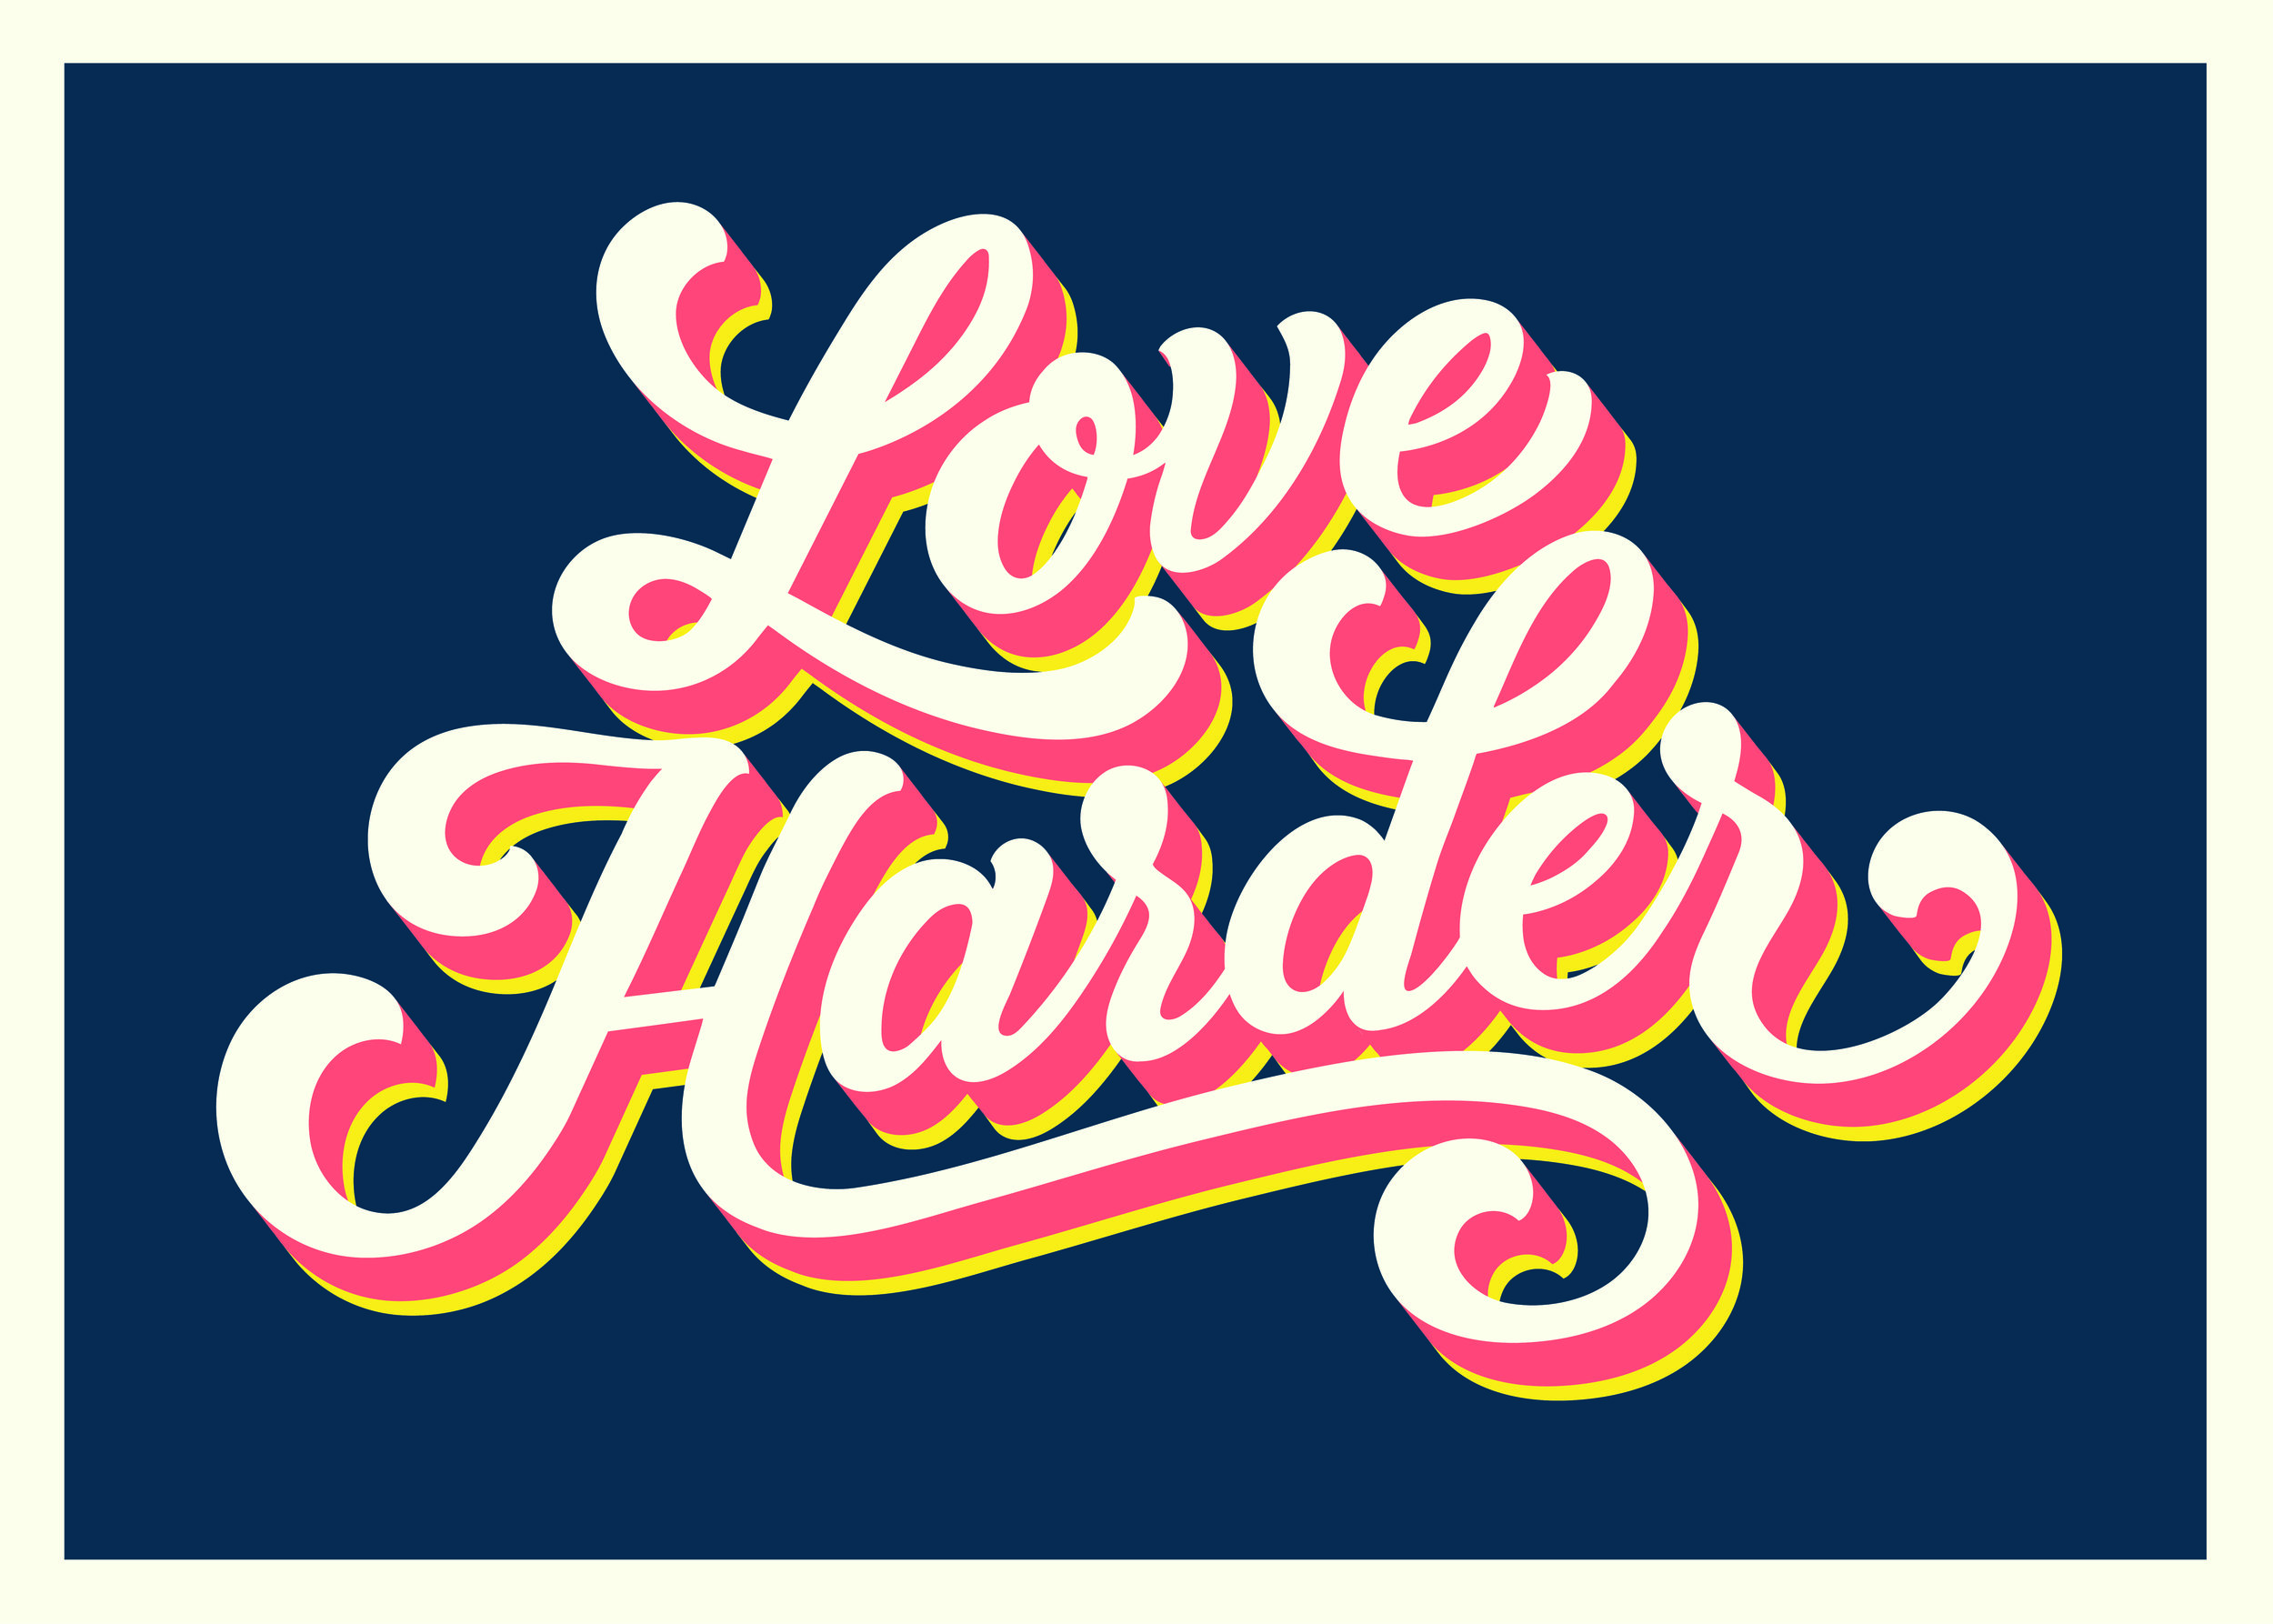 Lucinda Ireland, Love Harder